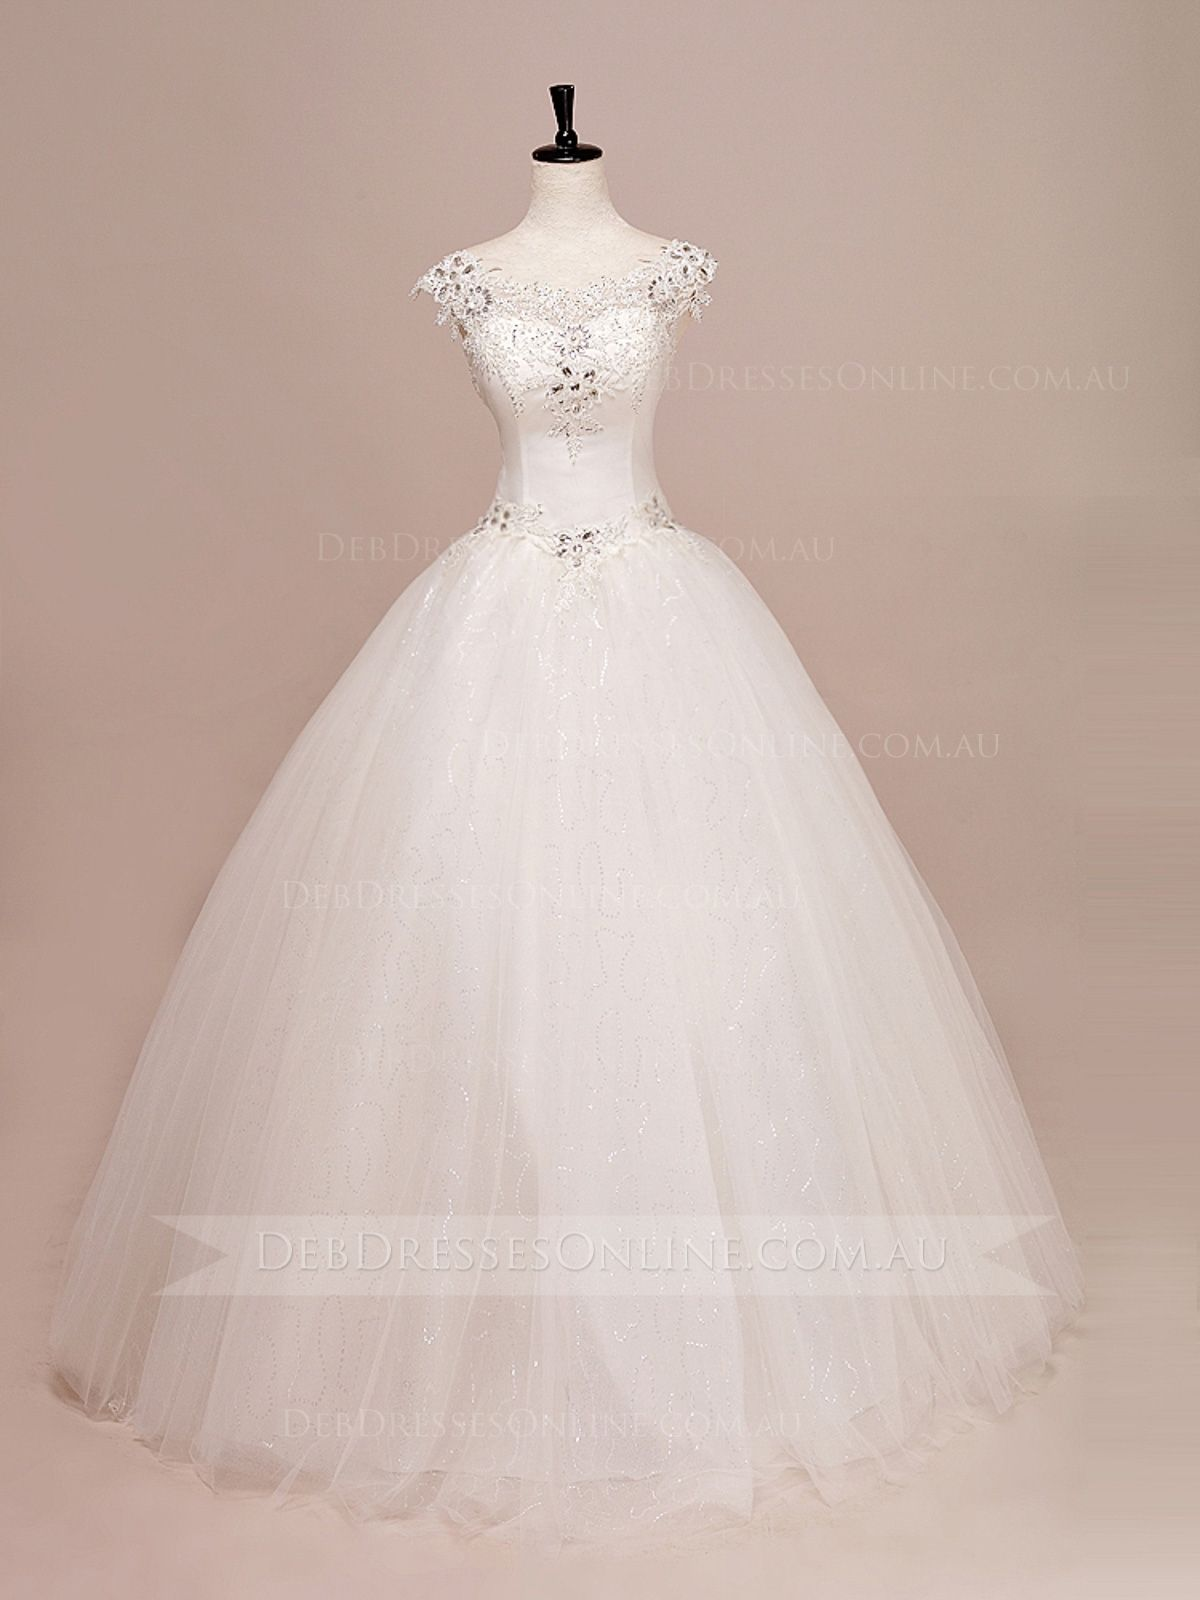 Bateau neckline lace cap sleeves fairytale ball gown vow front